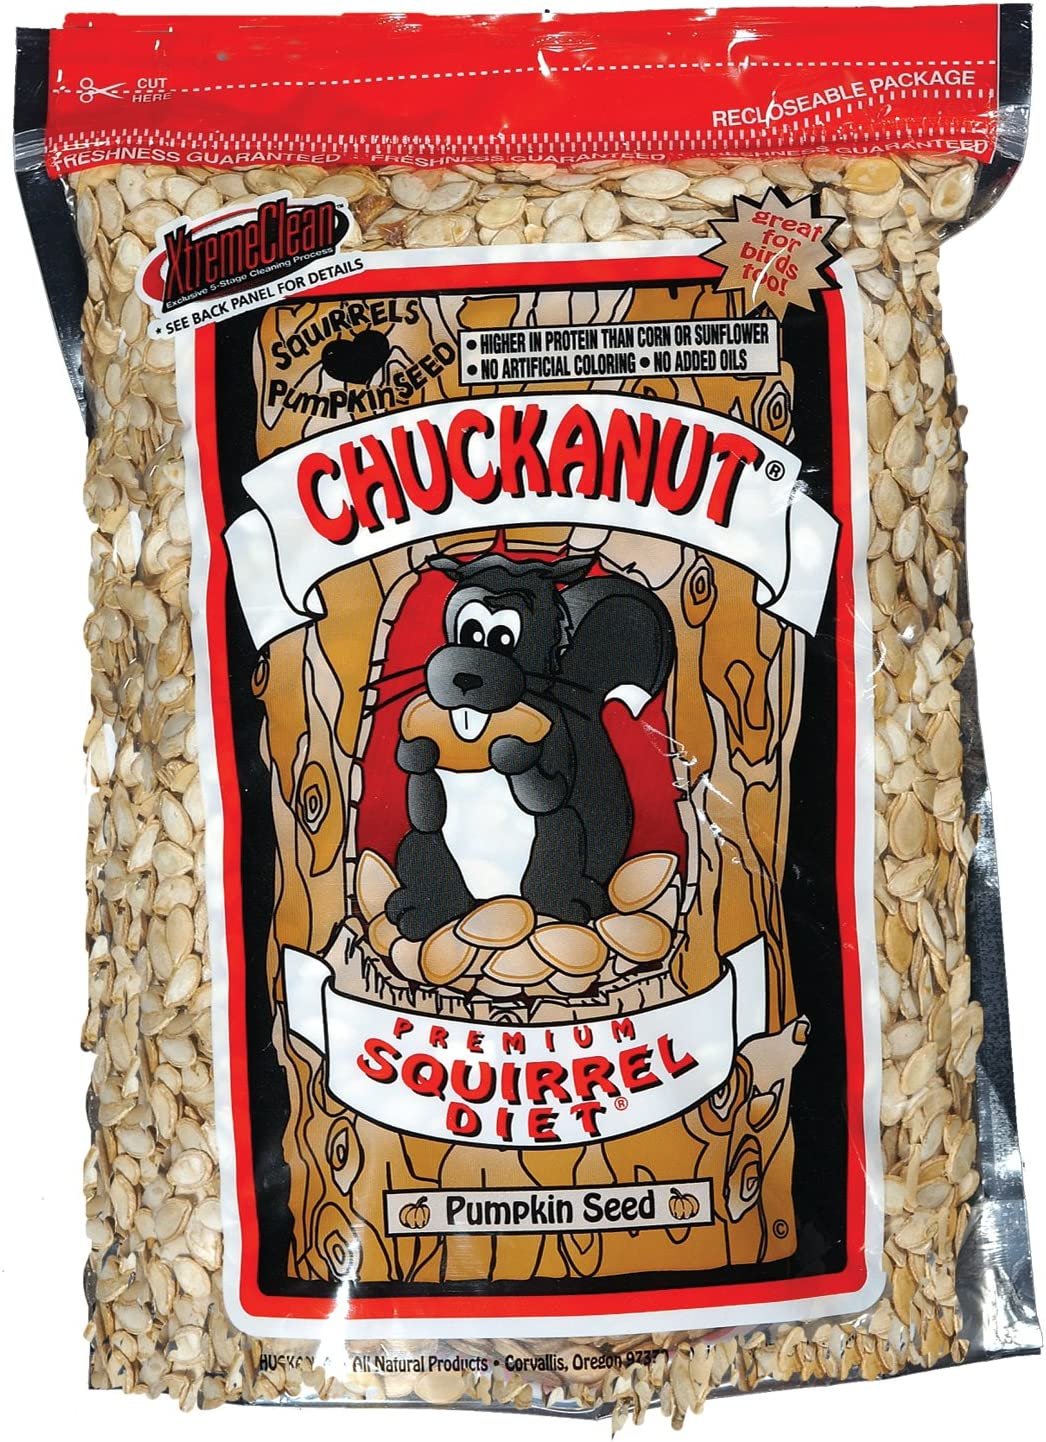 Chuck-A-Nut Natures Nuts 02002 3 Lbs Premium Squirrel Diet